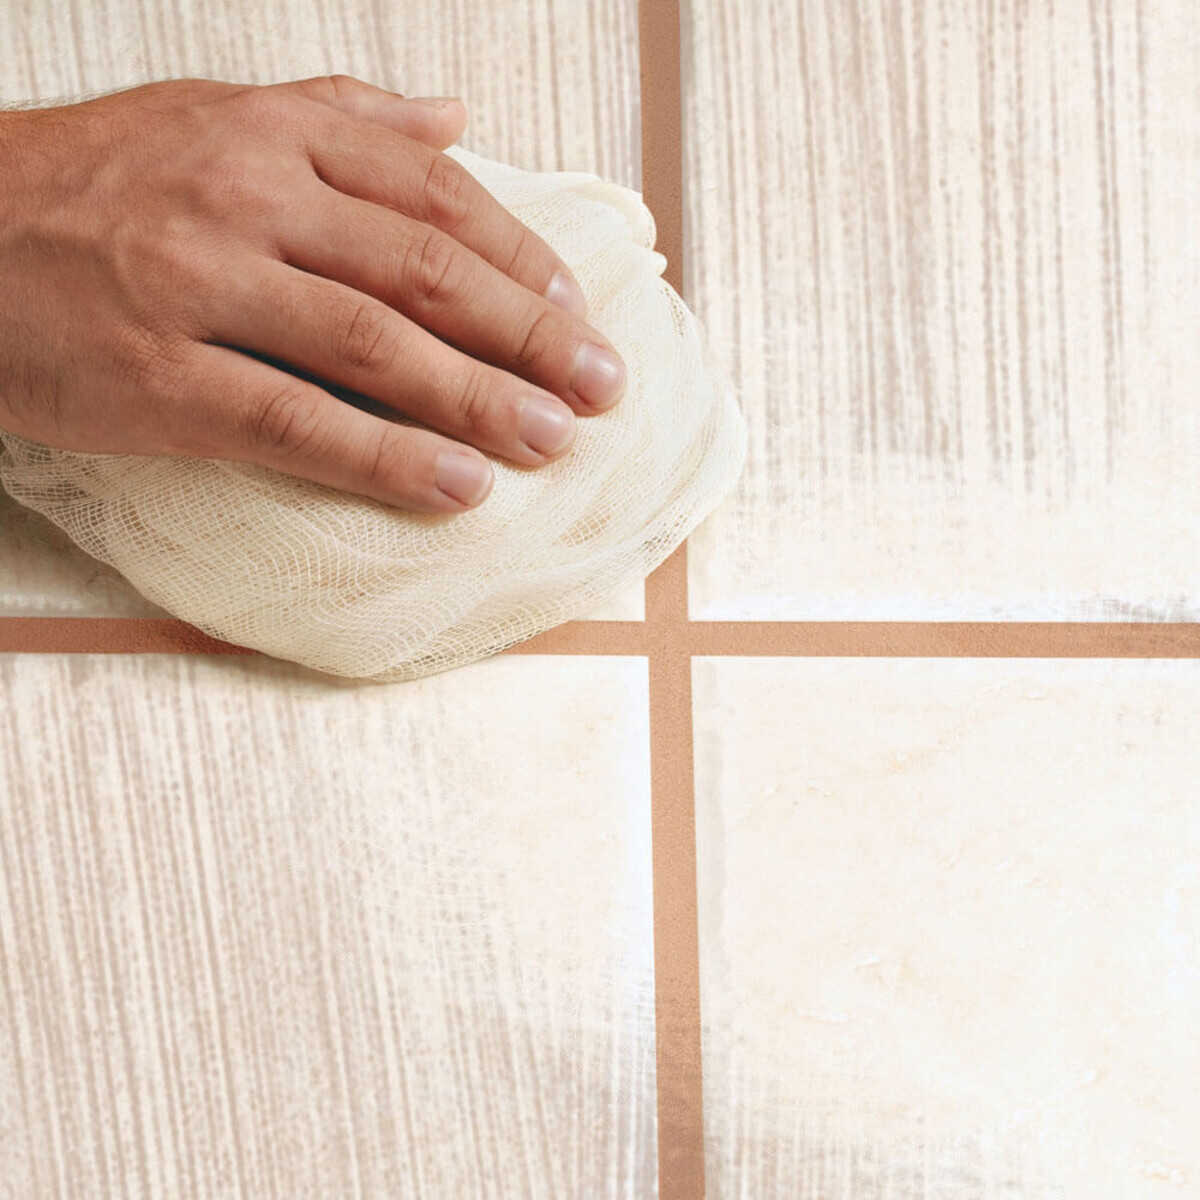 SuperiorBilt Cheesecloth To Clean Tile